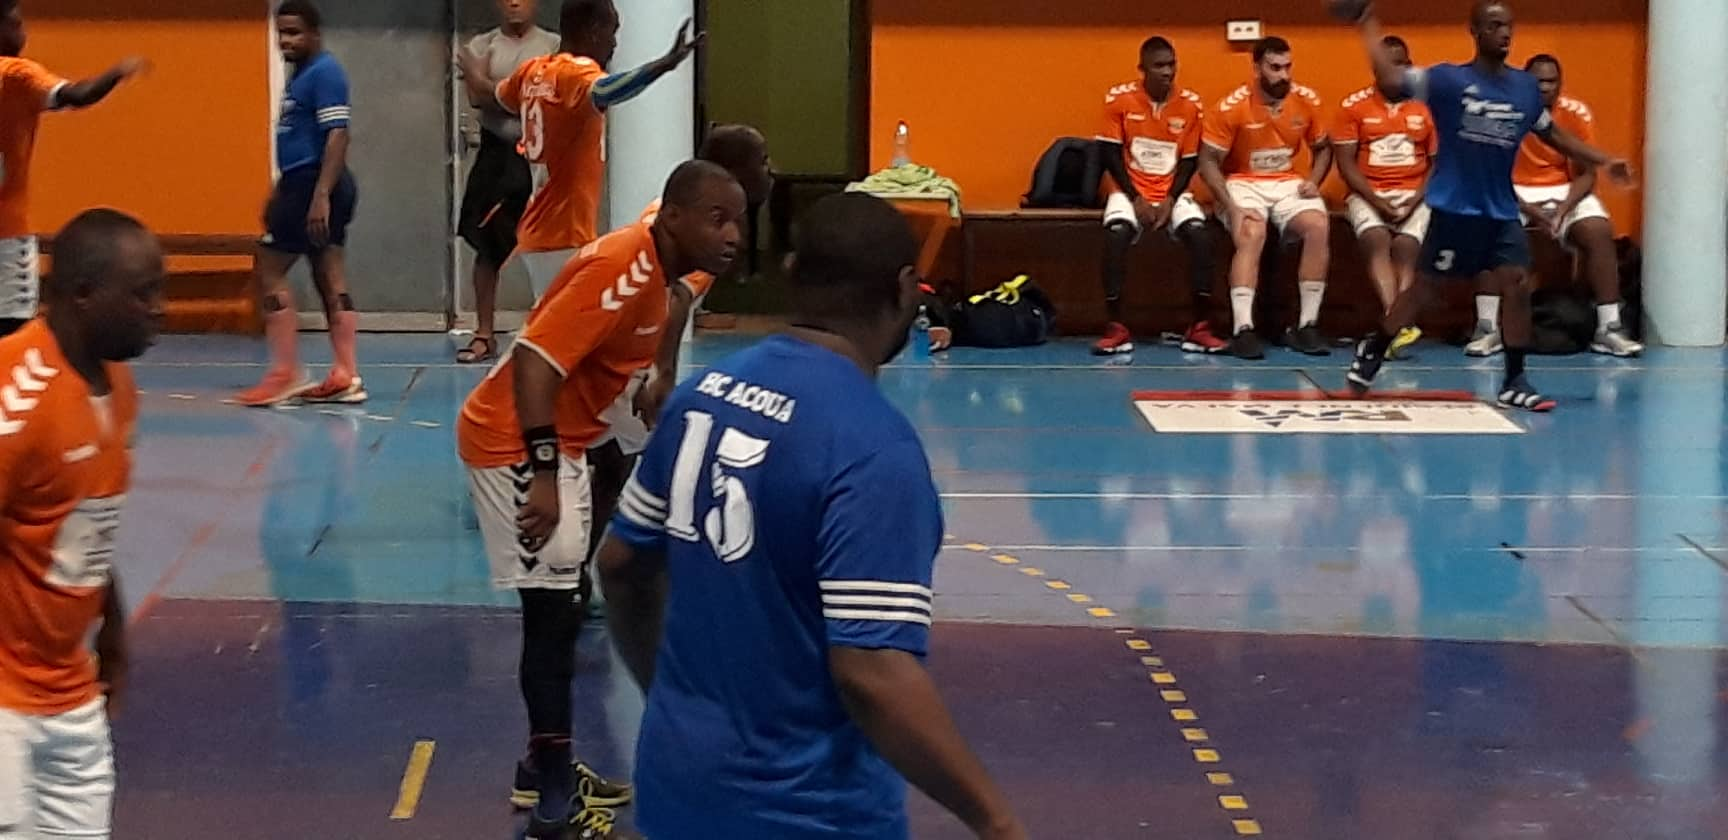 HCA vs HC Labattoir, Coupe de Mayotte, déc 2019